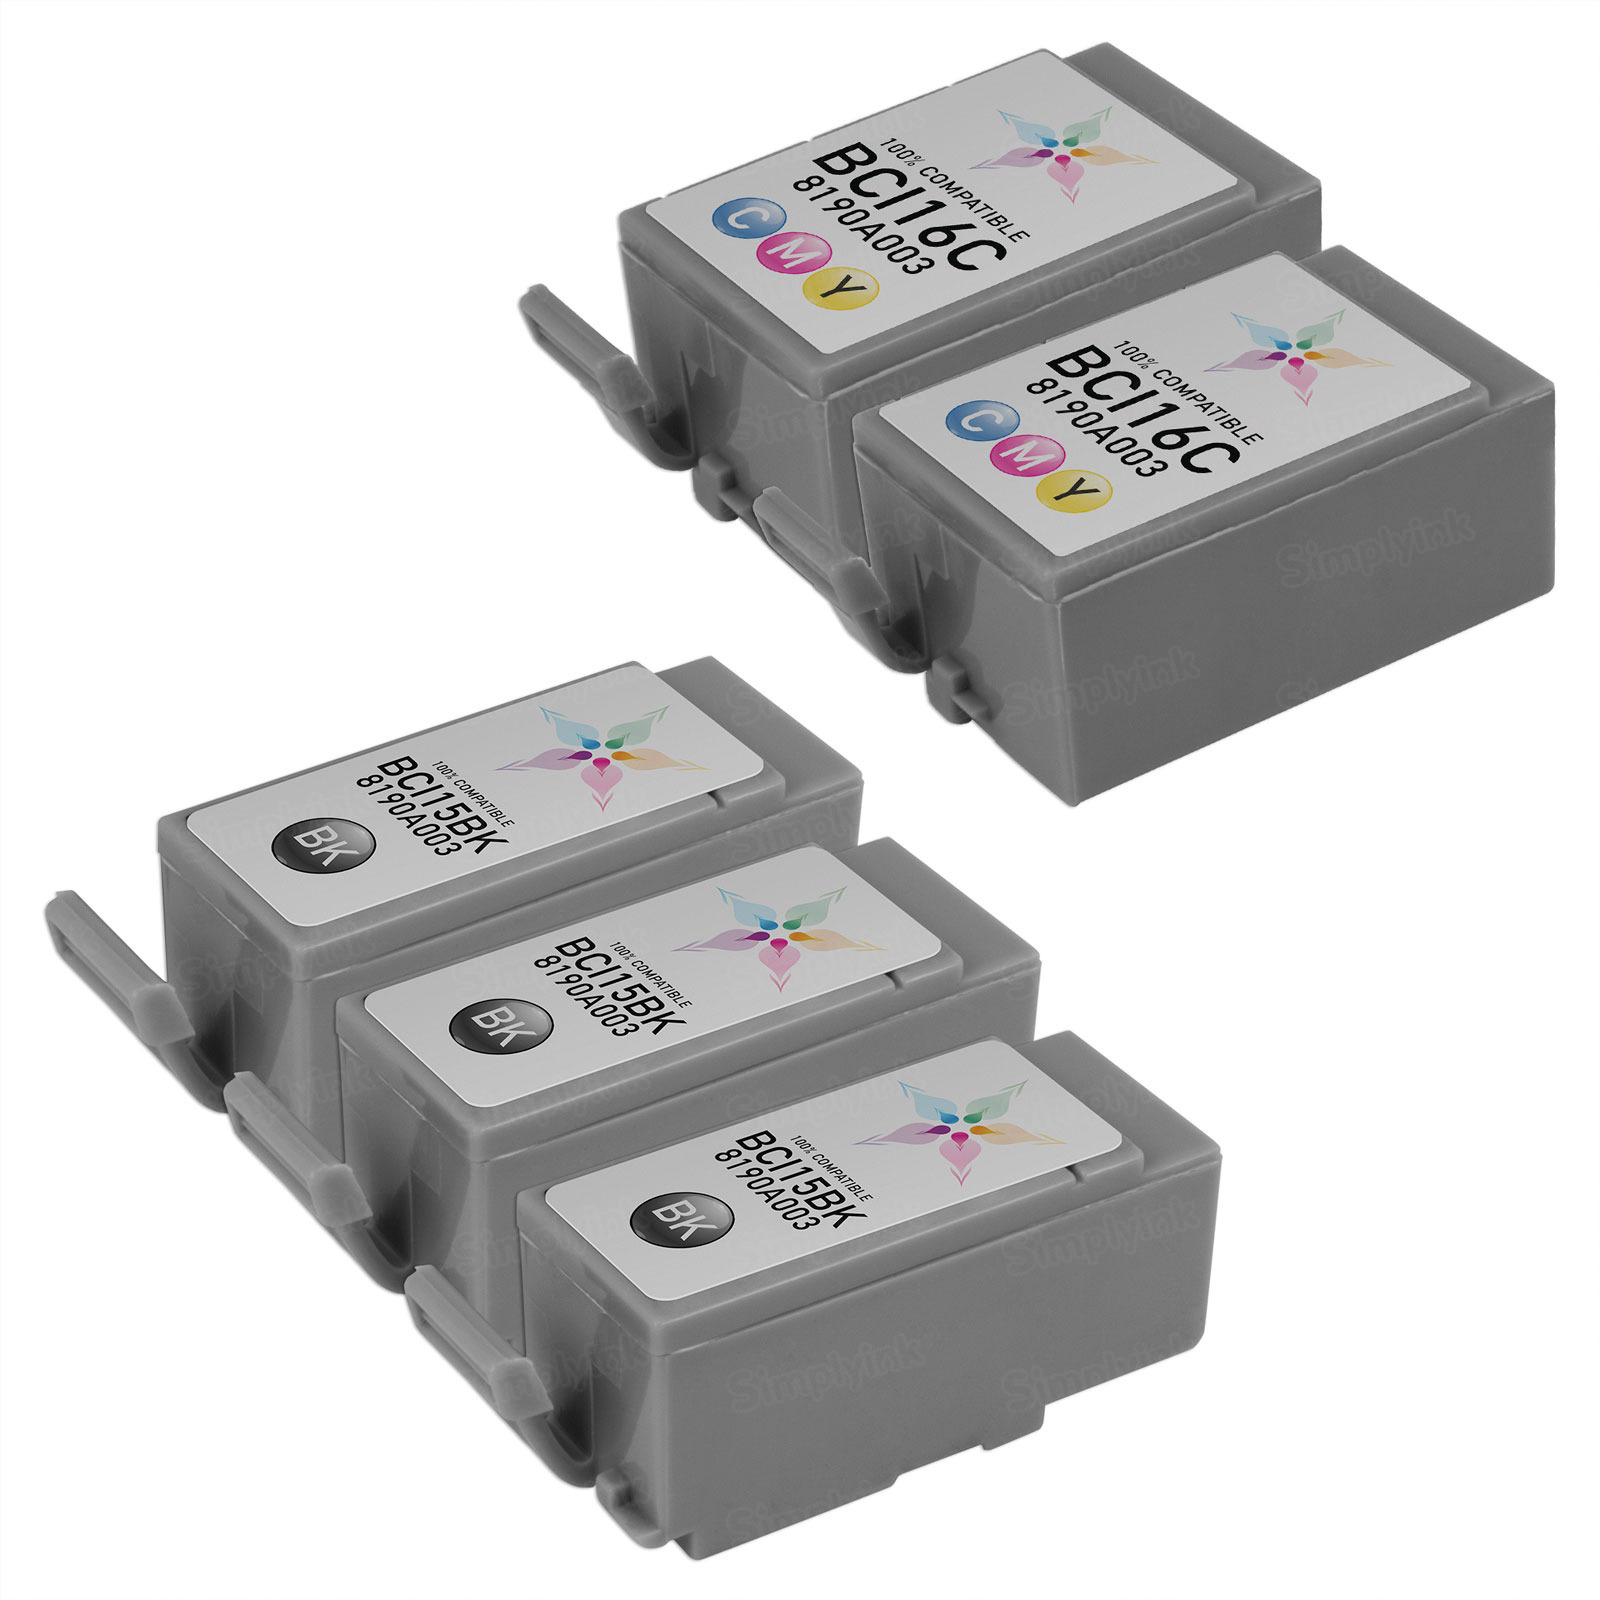 Inkjet Supplies for Canon Printers - Remanufactured Bulk Set of 5 Ink Cartridges - 3 Black Canon BCI15BK and 2 Color Canon BCI16C